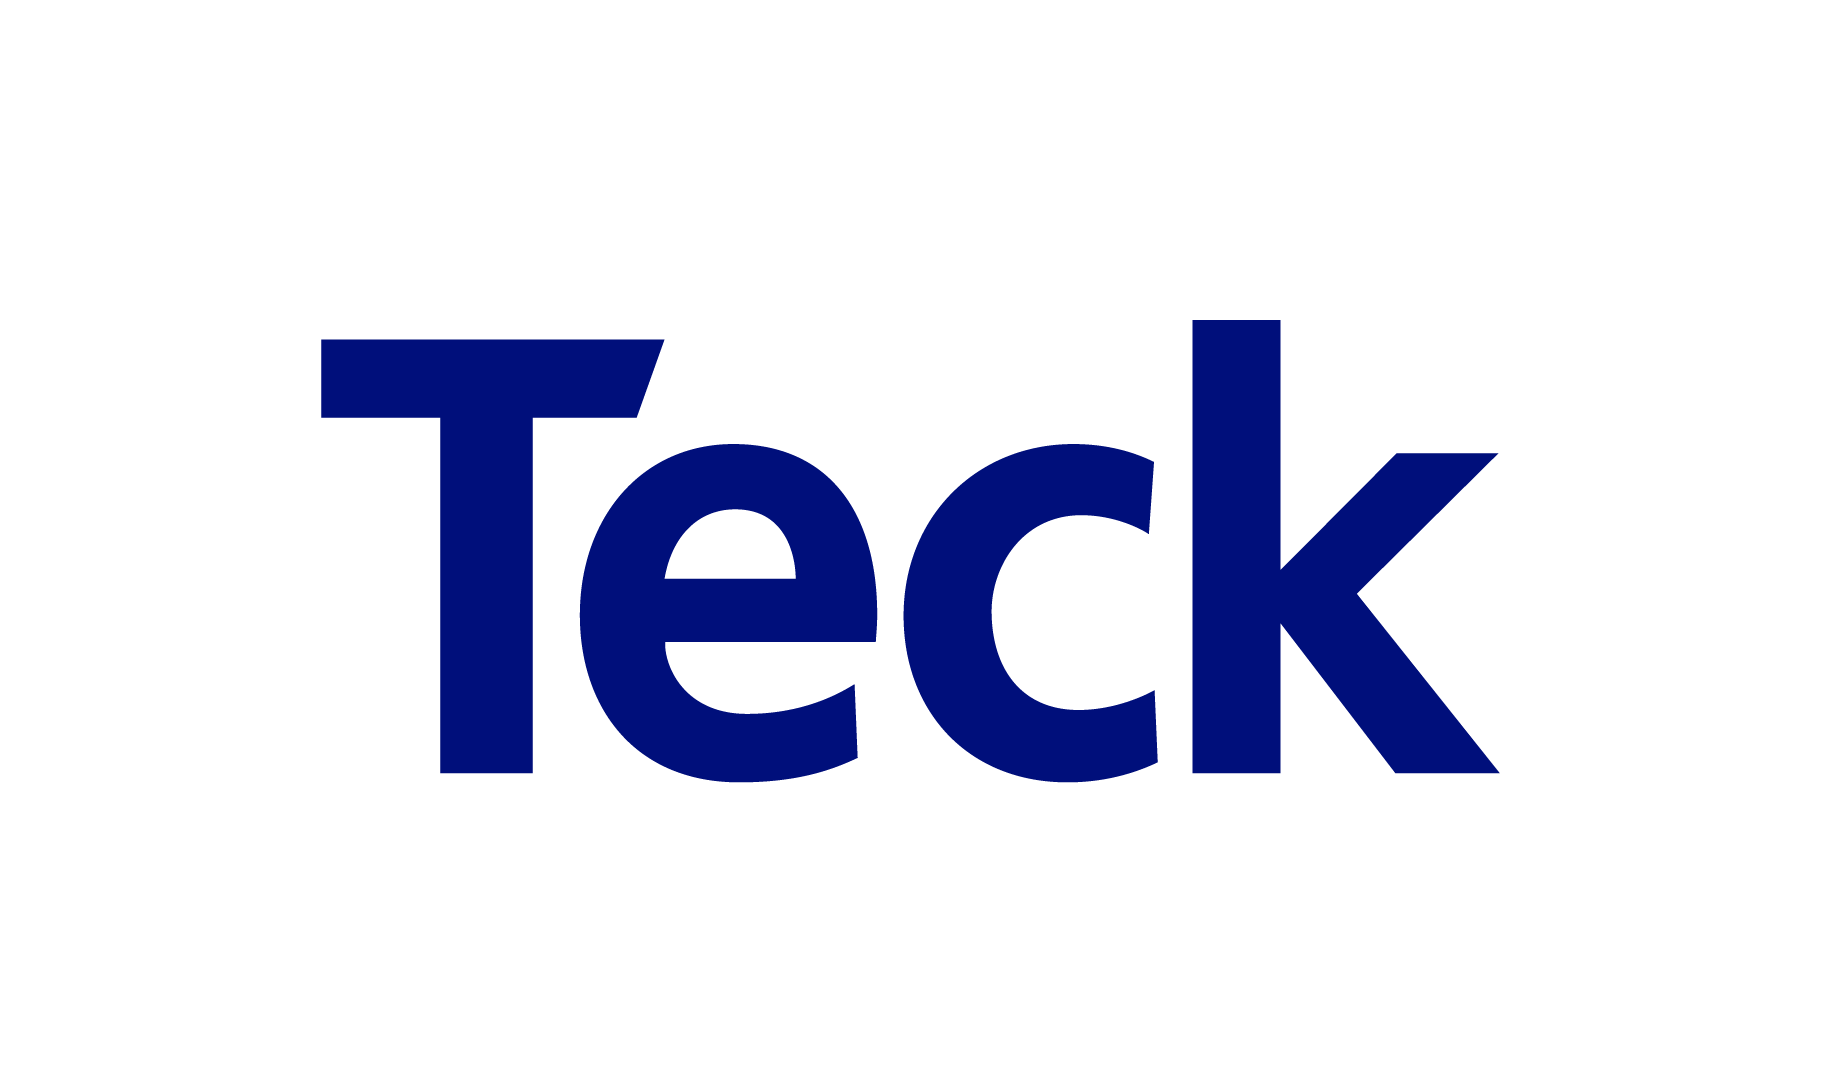 Teck Files Audited Annual Financial Statements for 2019